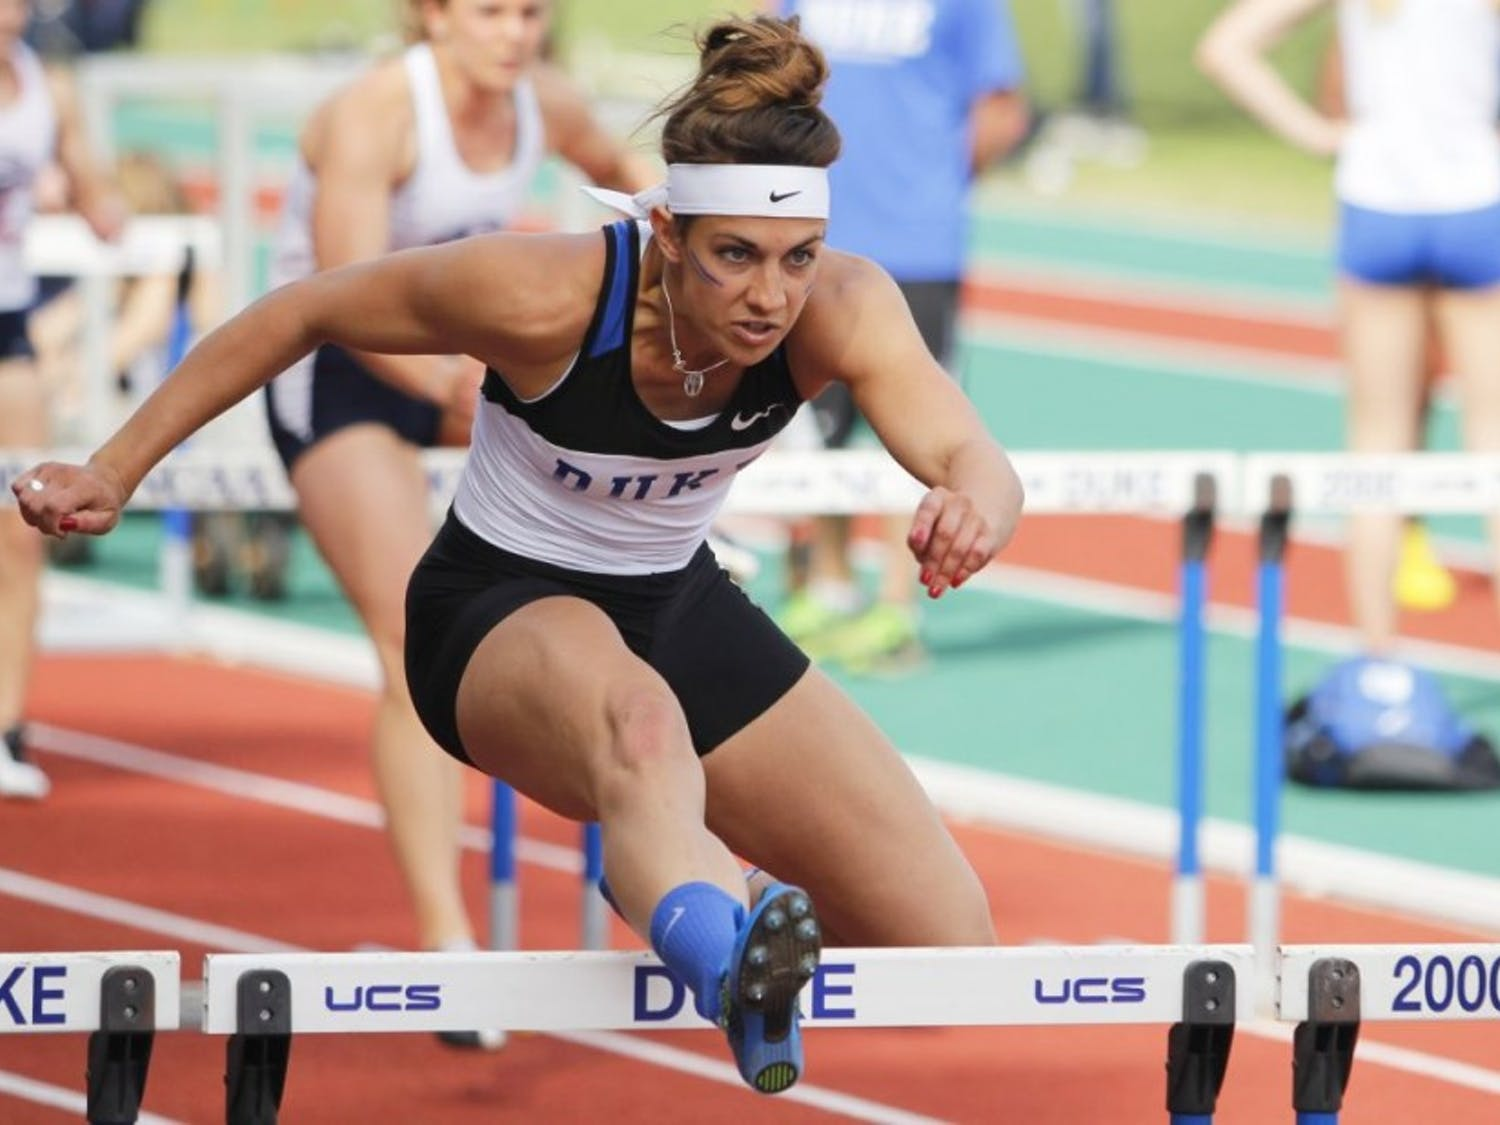 Teddi Maslowski barely missed out on the finals of the 100-meter hurdles but helped Duke's 4-x-200 meter relay team finish fifth overall and record the third-fastest time in program history at 1:35.64.